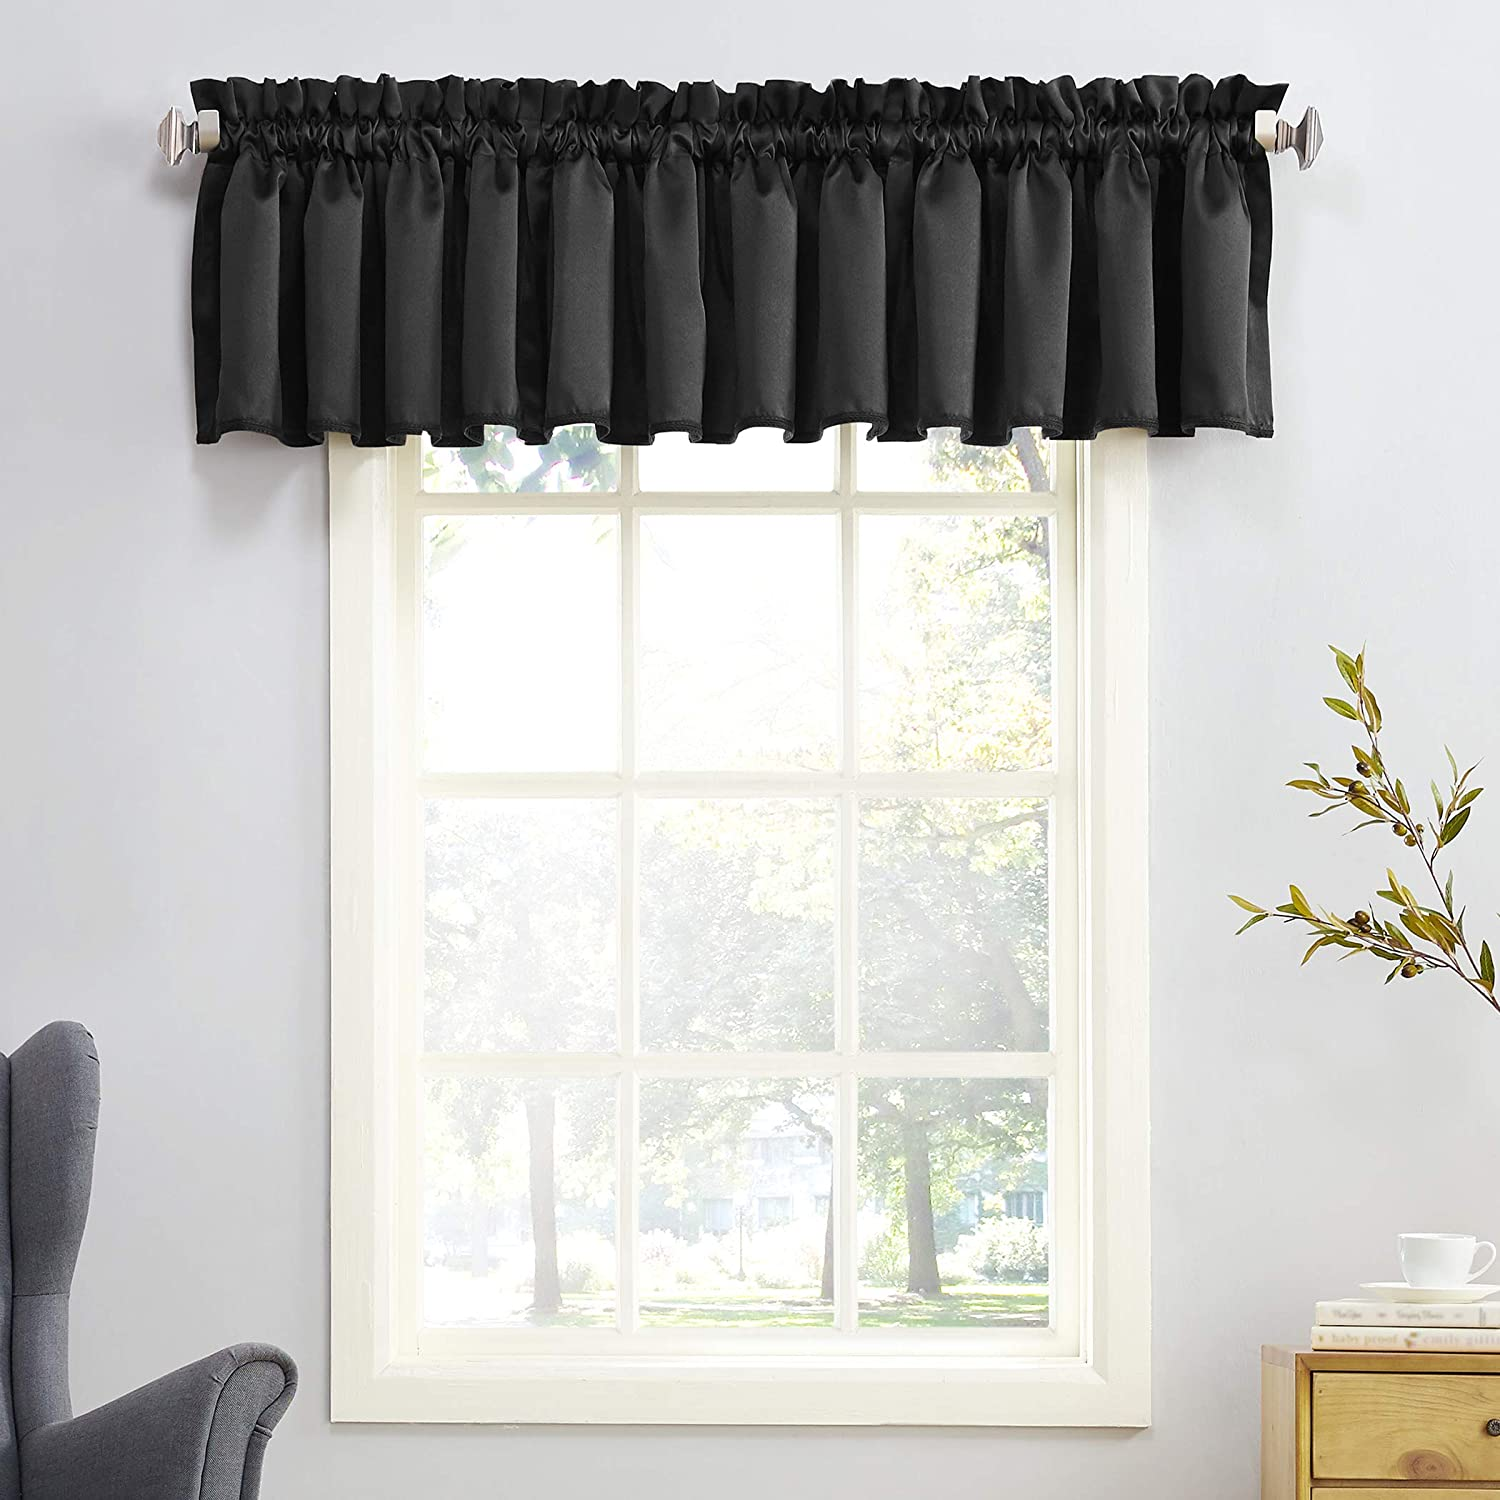 Amazon Com Sun Zero Barrow Energy Efficient Rod Pocket Curtain Valance 54 X 18 Black Home Kitchen